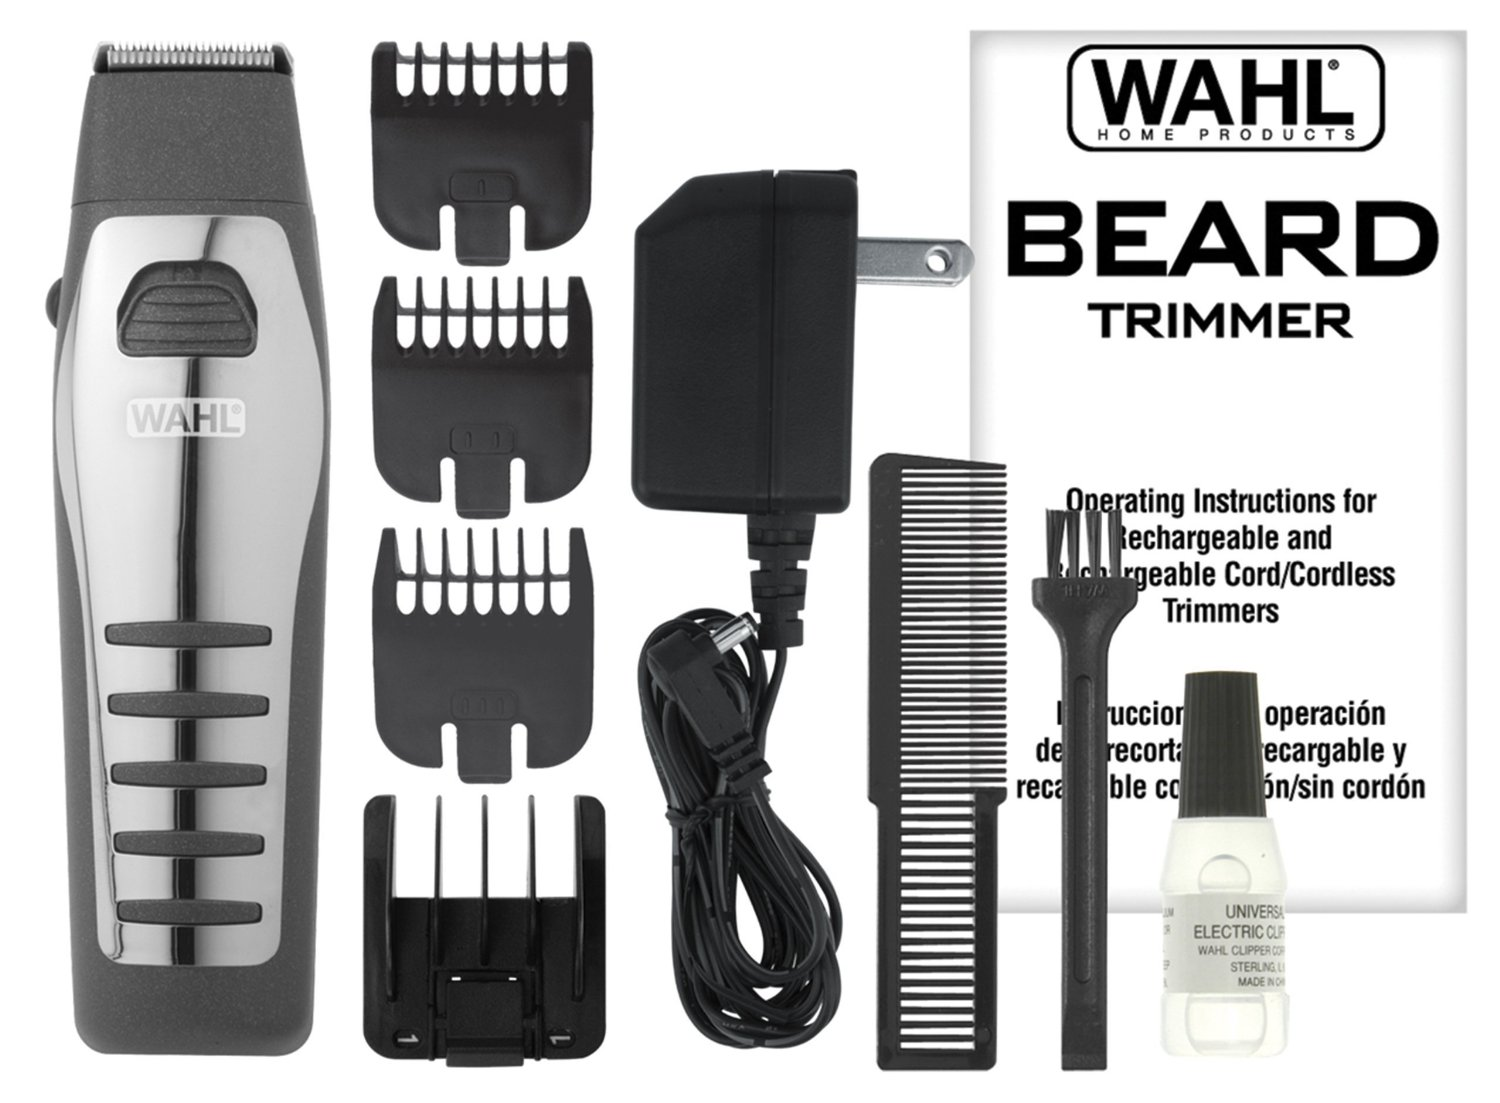 Wahl 9876-536 Rechargeable/Cordless Beard Trimmer